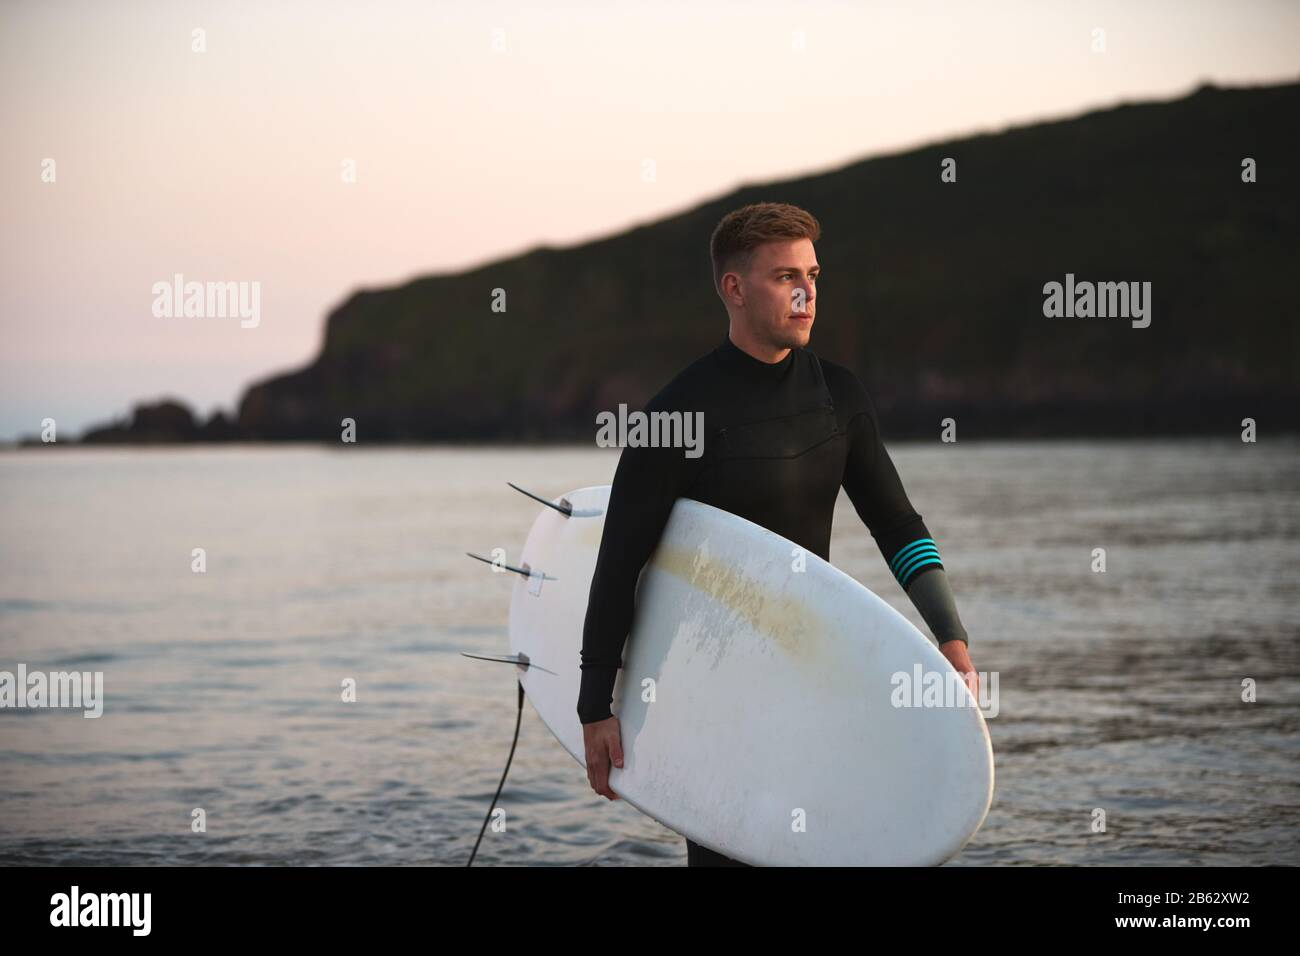 Man Wearing Wetsuit Carrying Surfboard As He Walks Out Of Sea Stock Photo